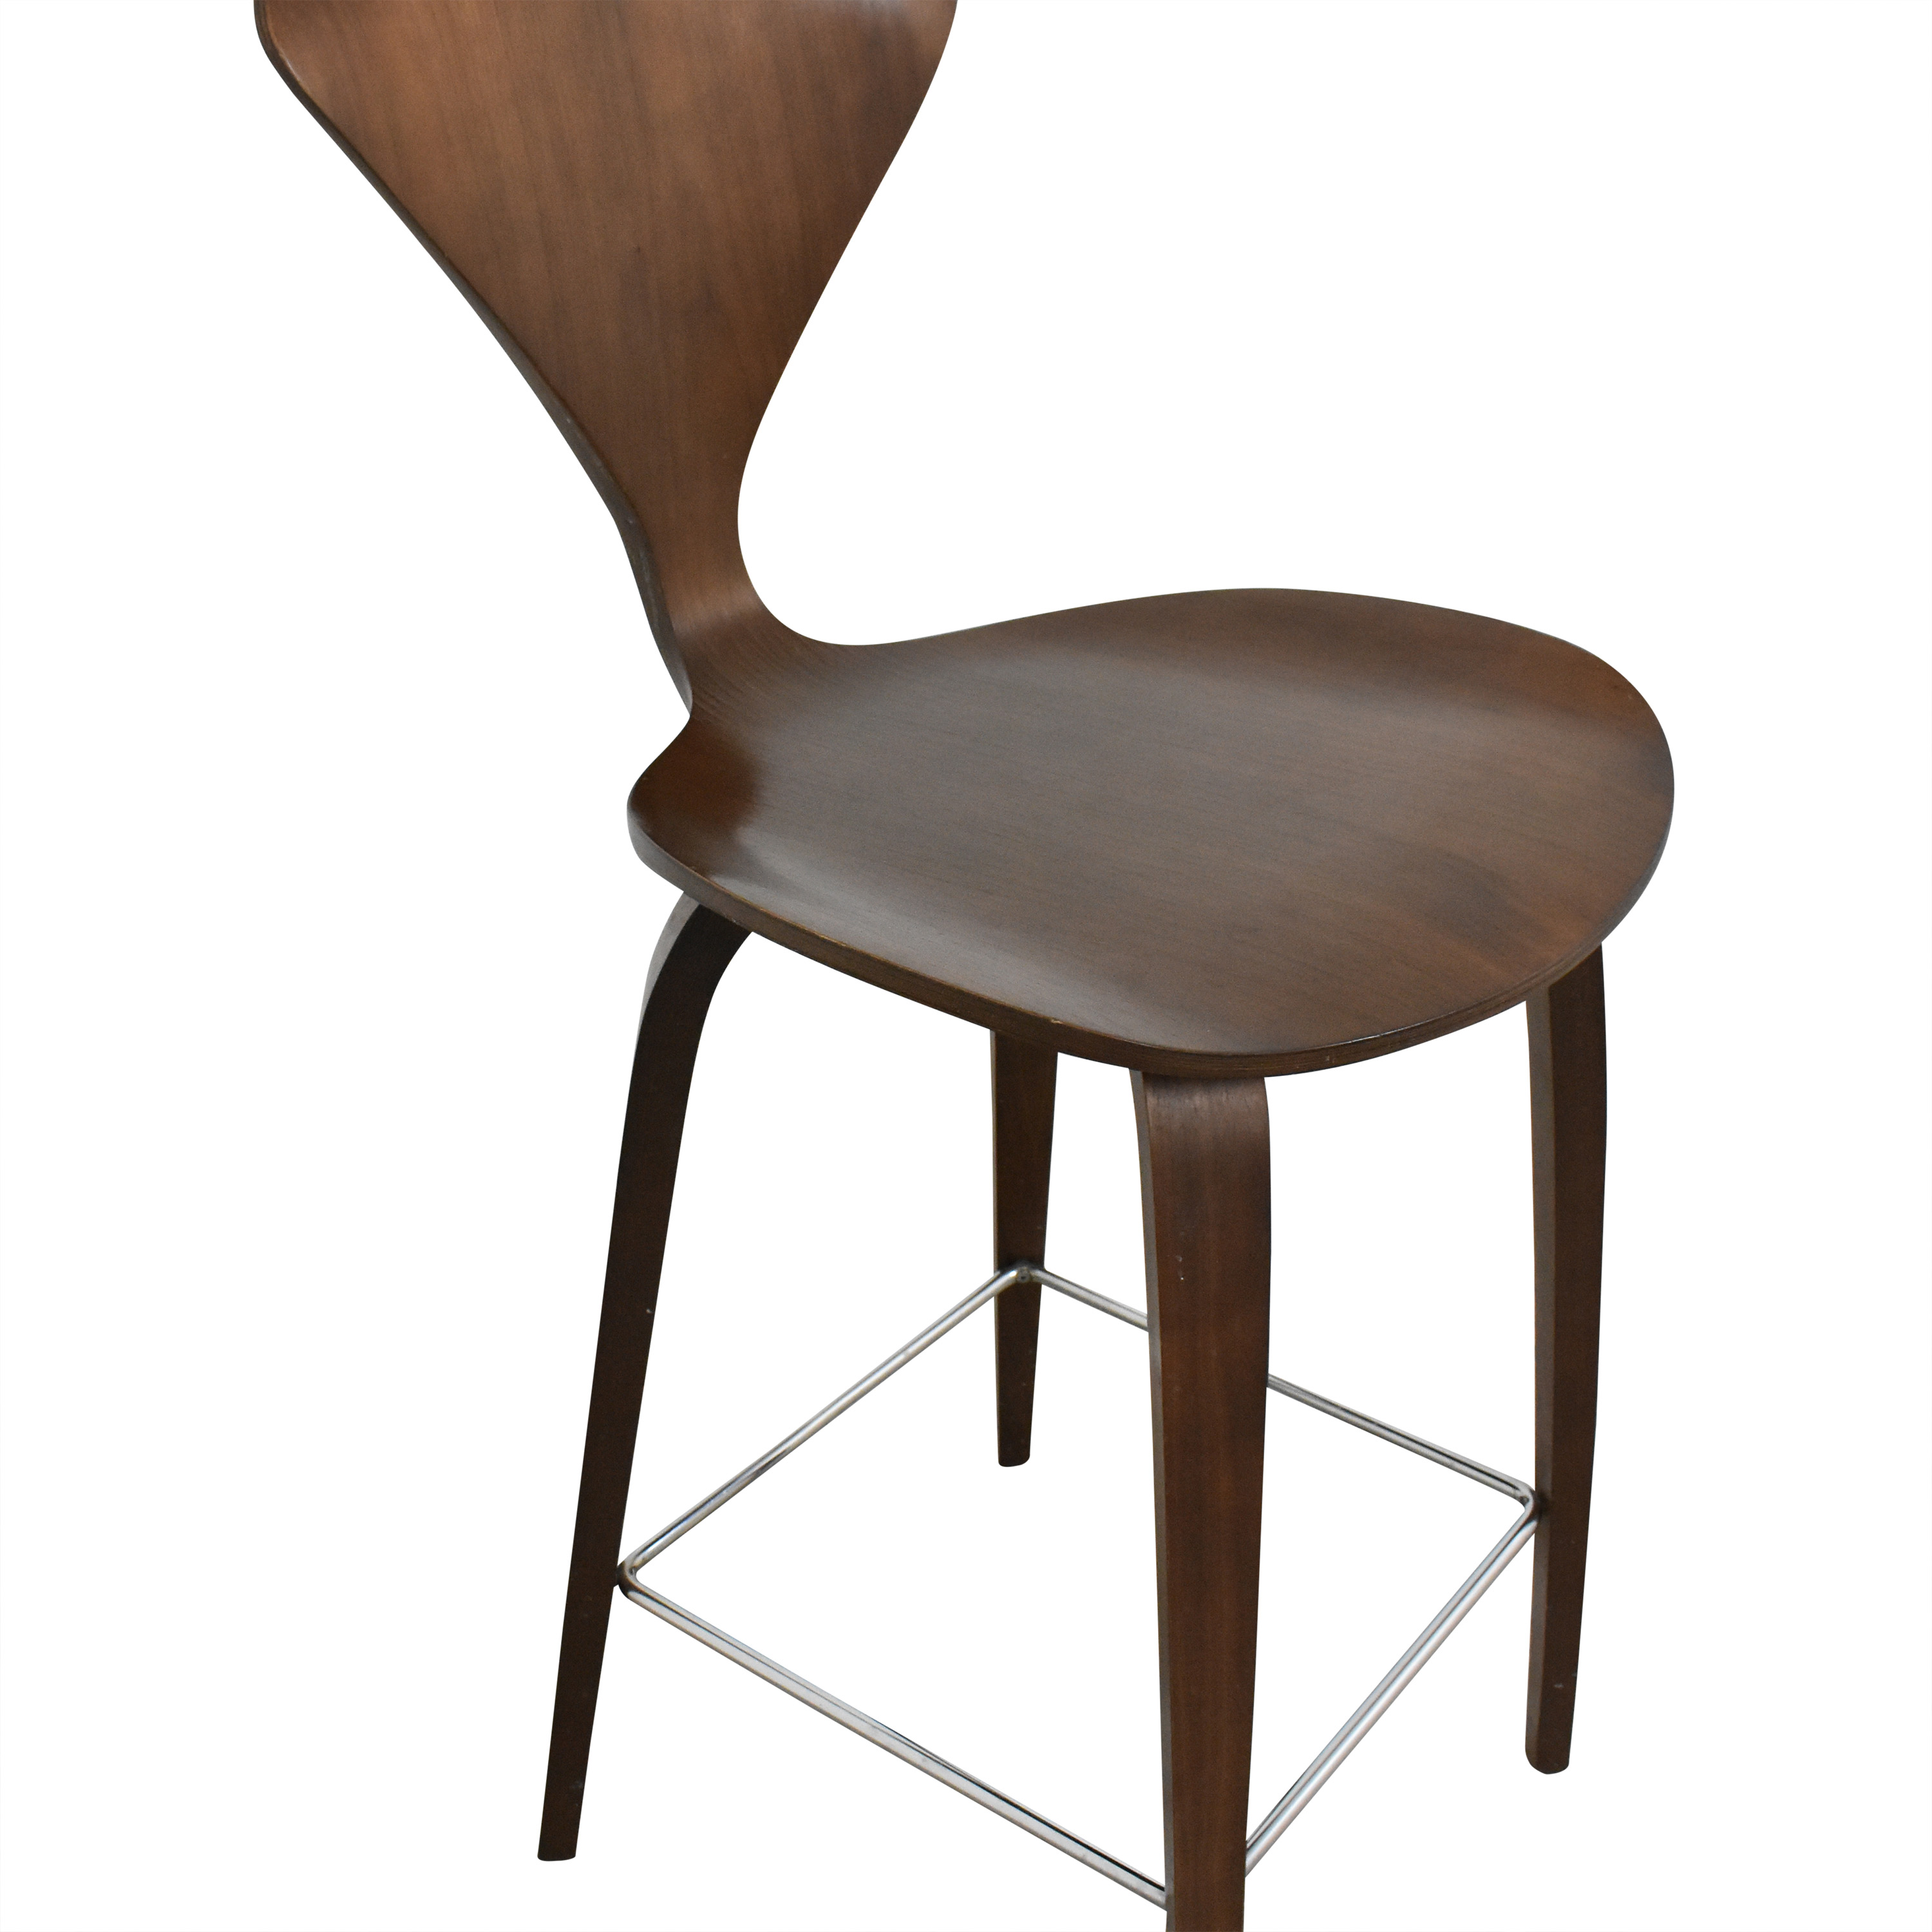 Design Within Reach Design Within Reach Cherner Stool dimensions